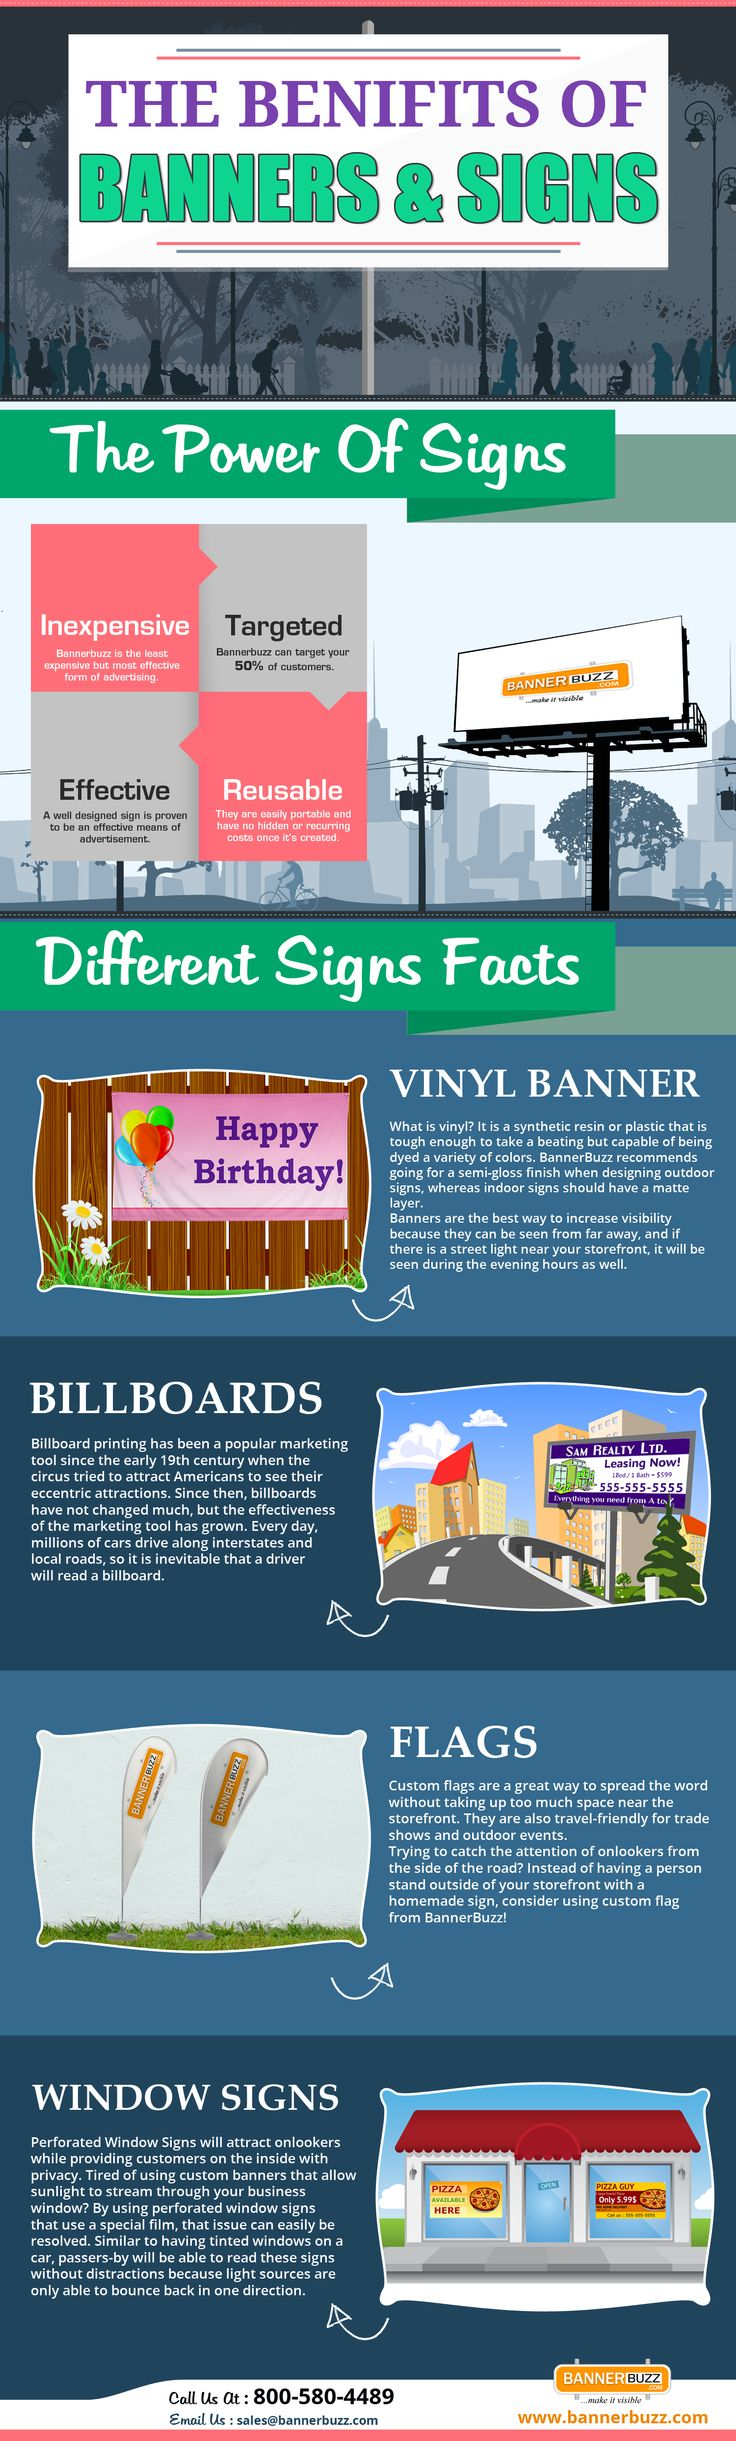 Best Vinyl Banners Images On Pinterest Vinyl Banners Vinyls - Vinyl banners and signsexhibitiondisplay signs pvc banners roller banners flag